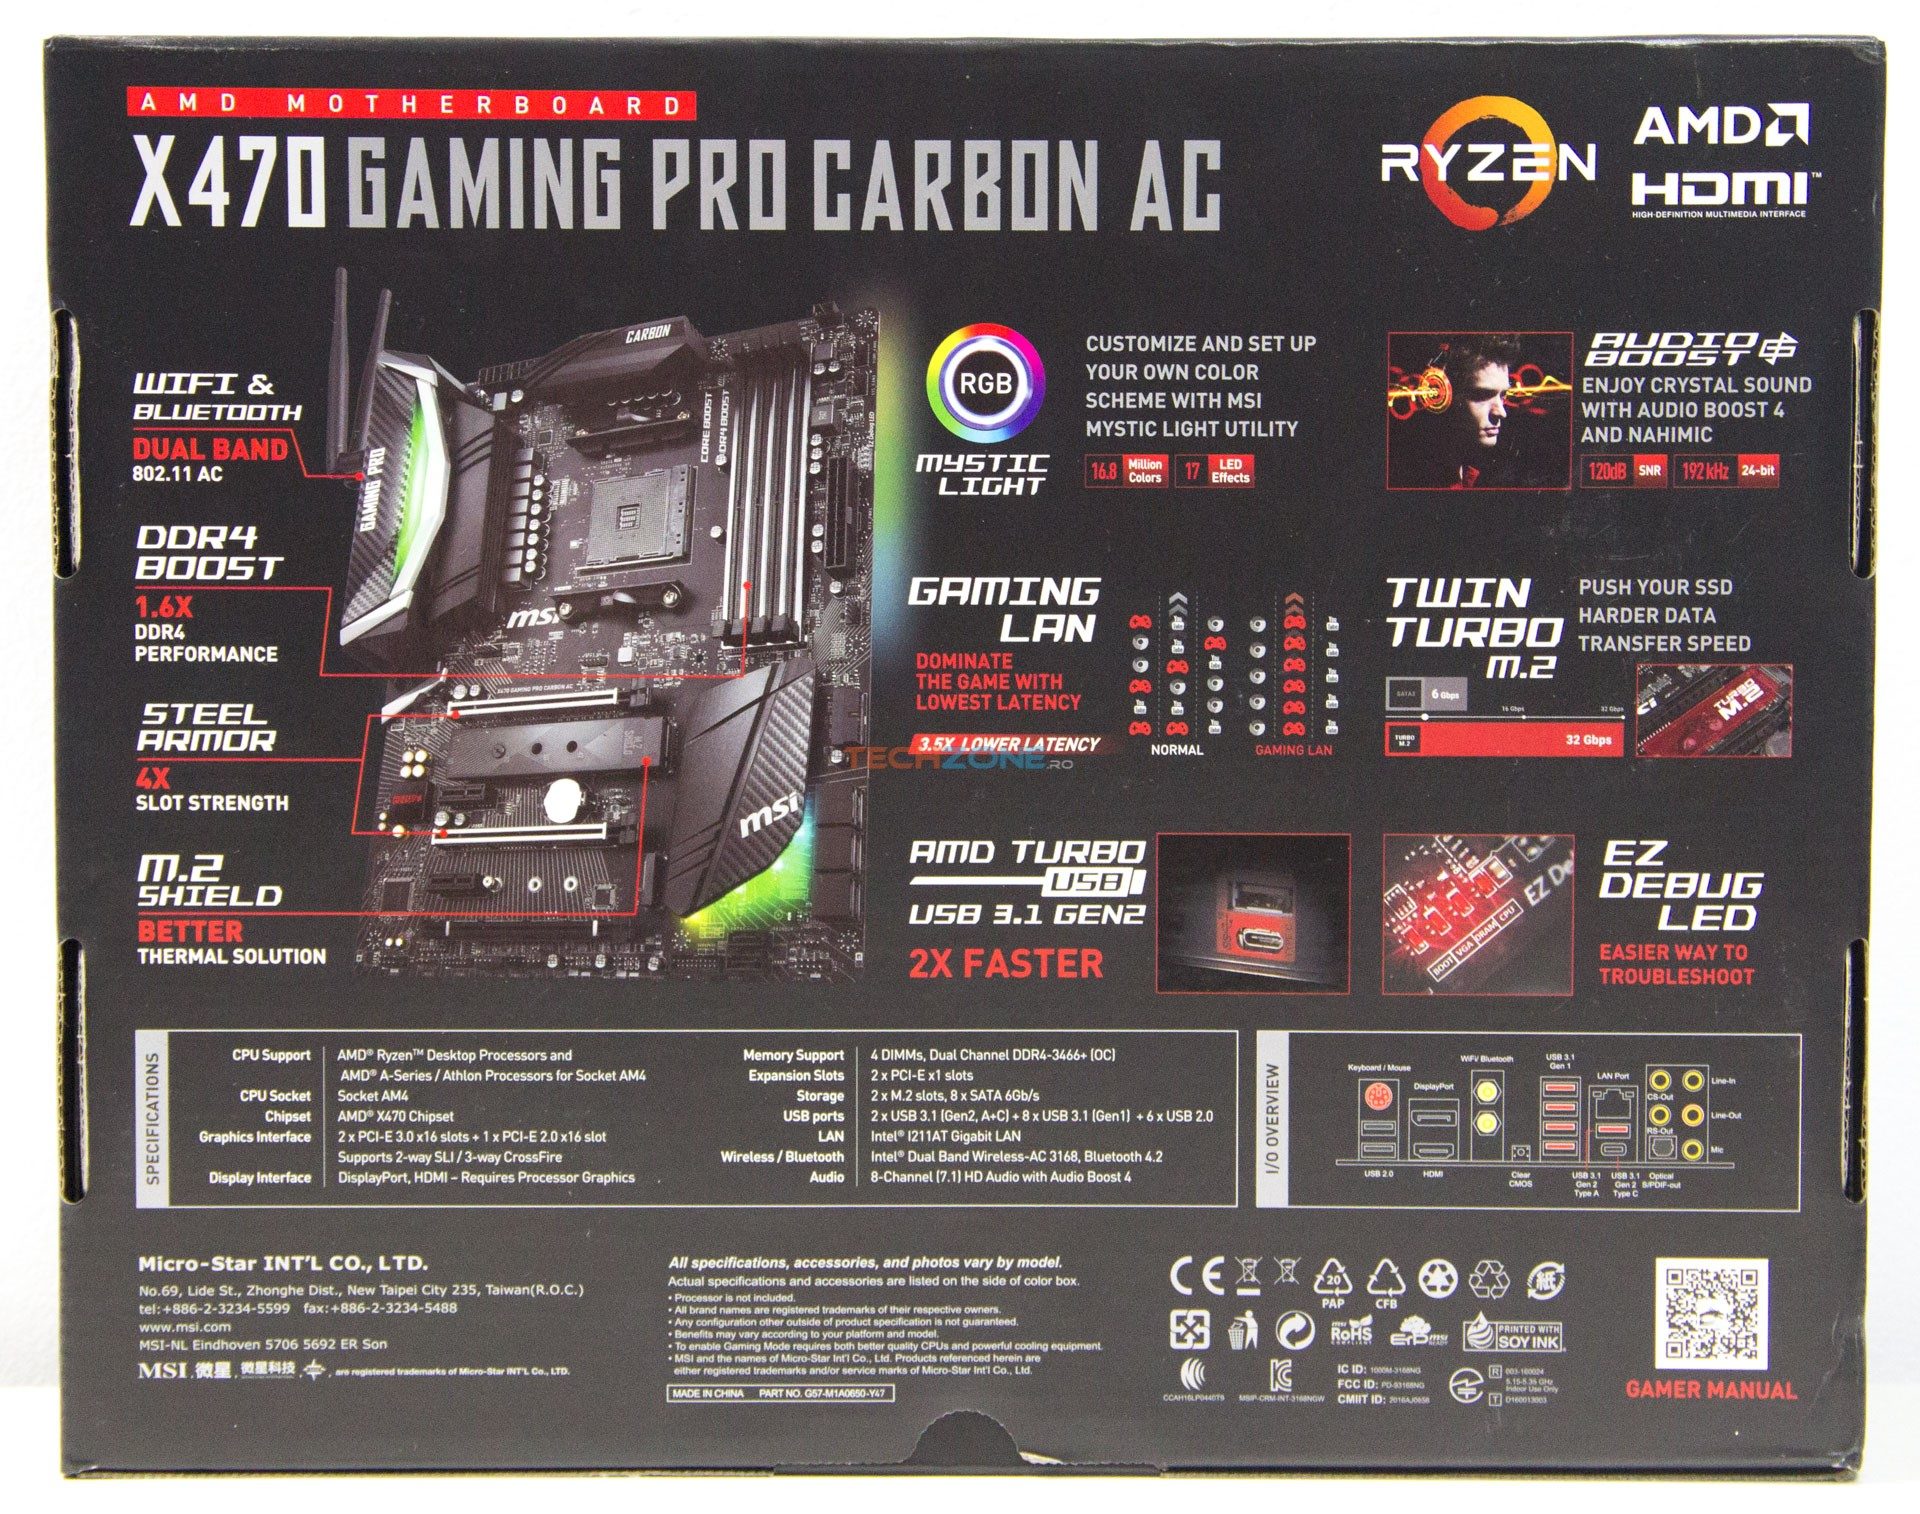 MSI X470 Gaming Pro Carbon AC box back